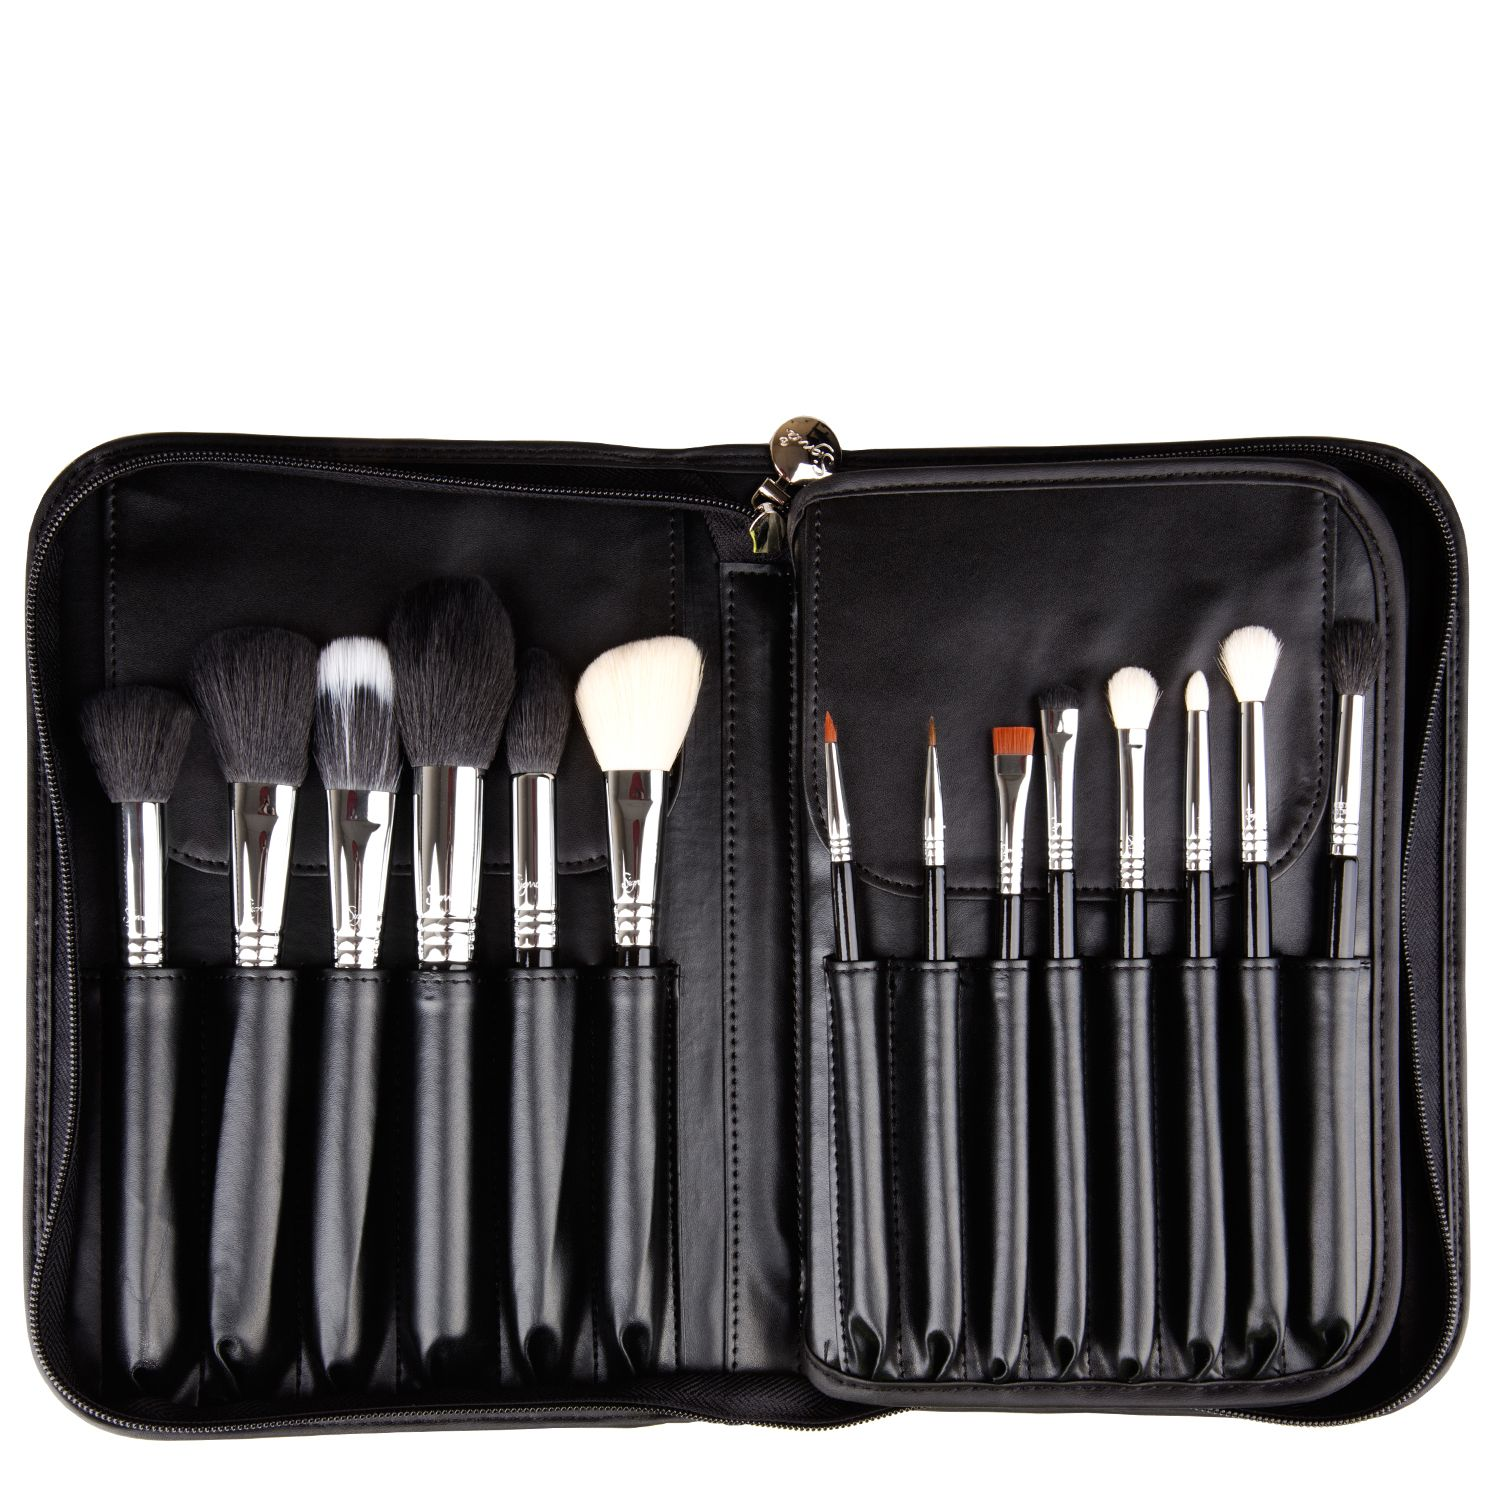 Complete Kit Makeup brush set, Makeup brushes, Online makeup